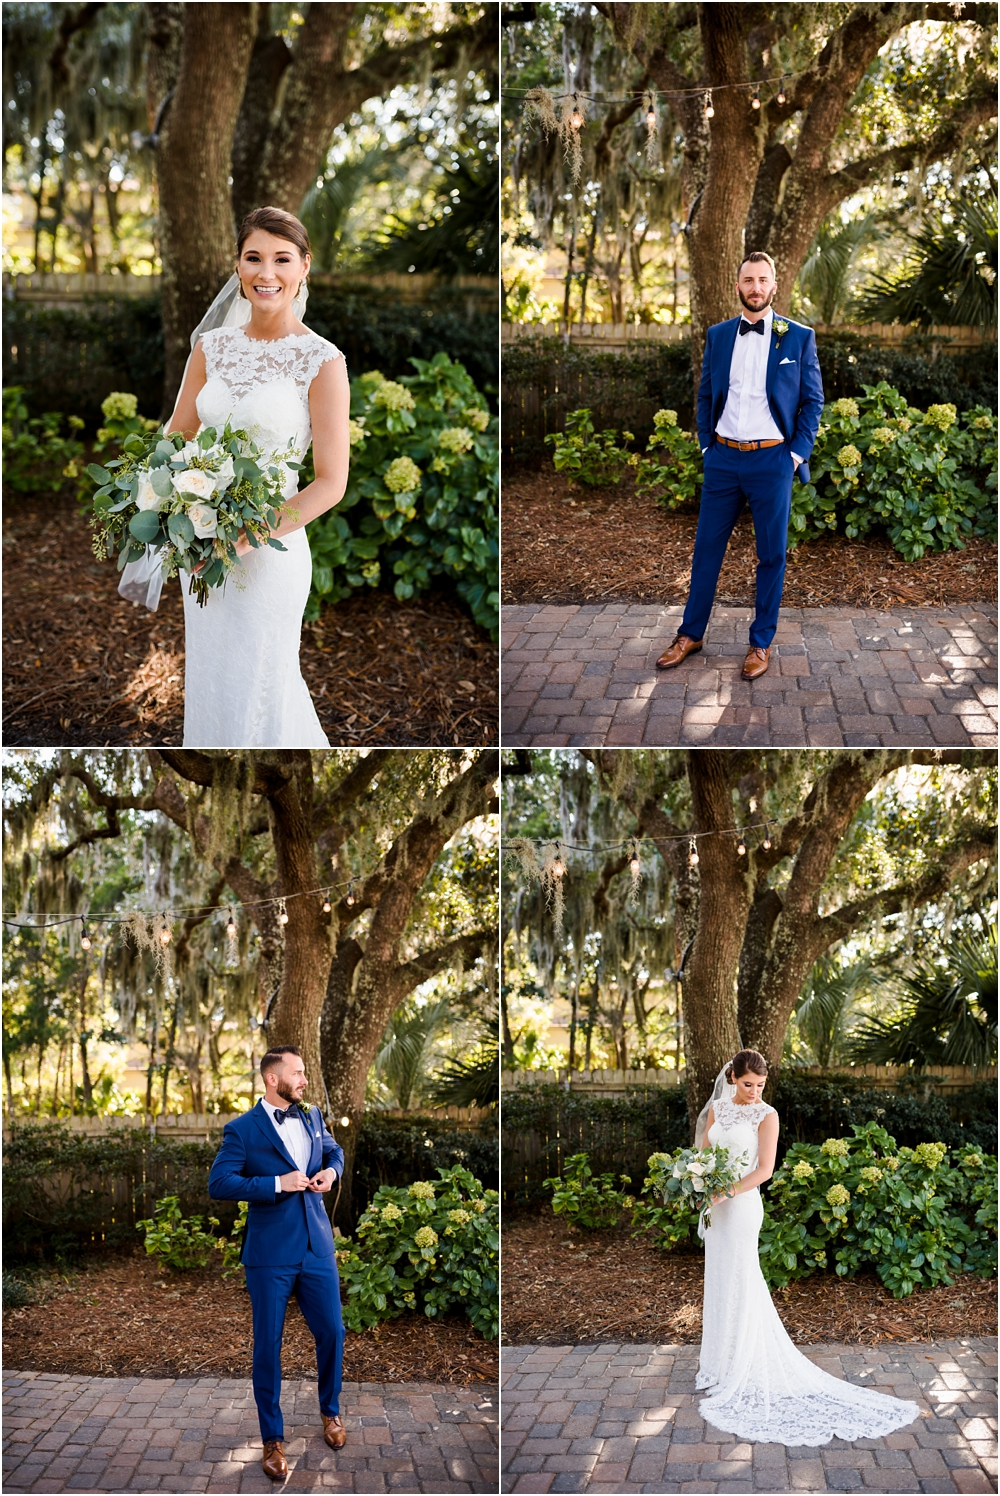 varner-florida-wedding-photographer-30a-panama-city-beach-destin-tallahassee-kiersten-grant-photography-61.jpg